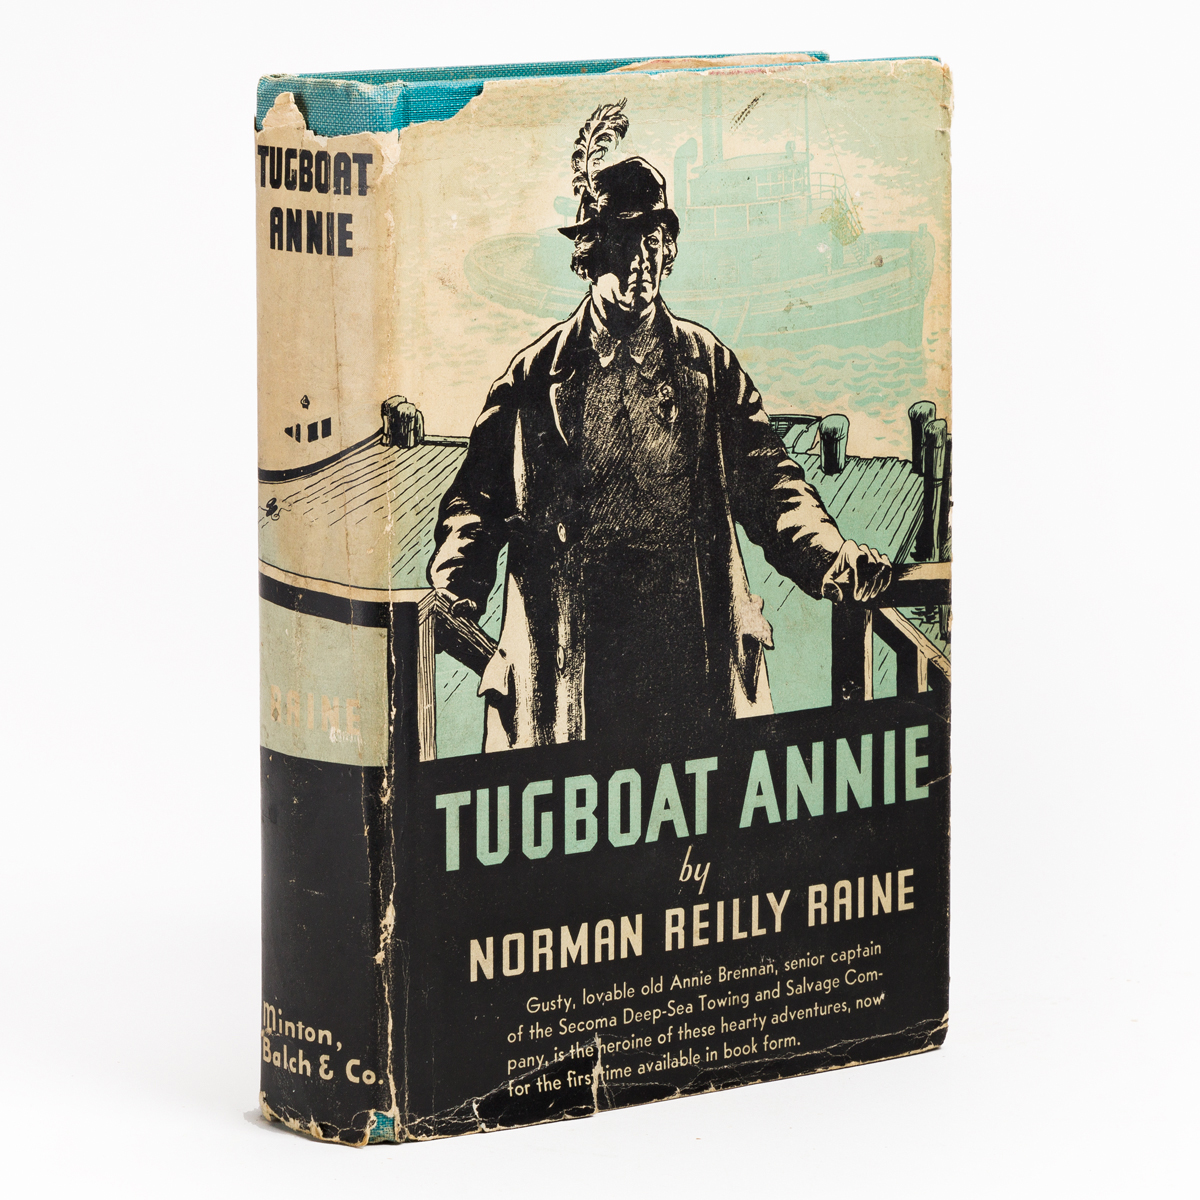 RAINE, NORMAN REILLY. Tugboat Annie.